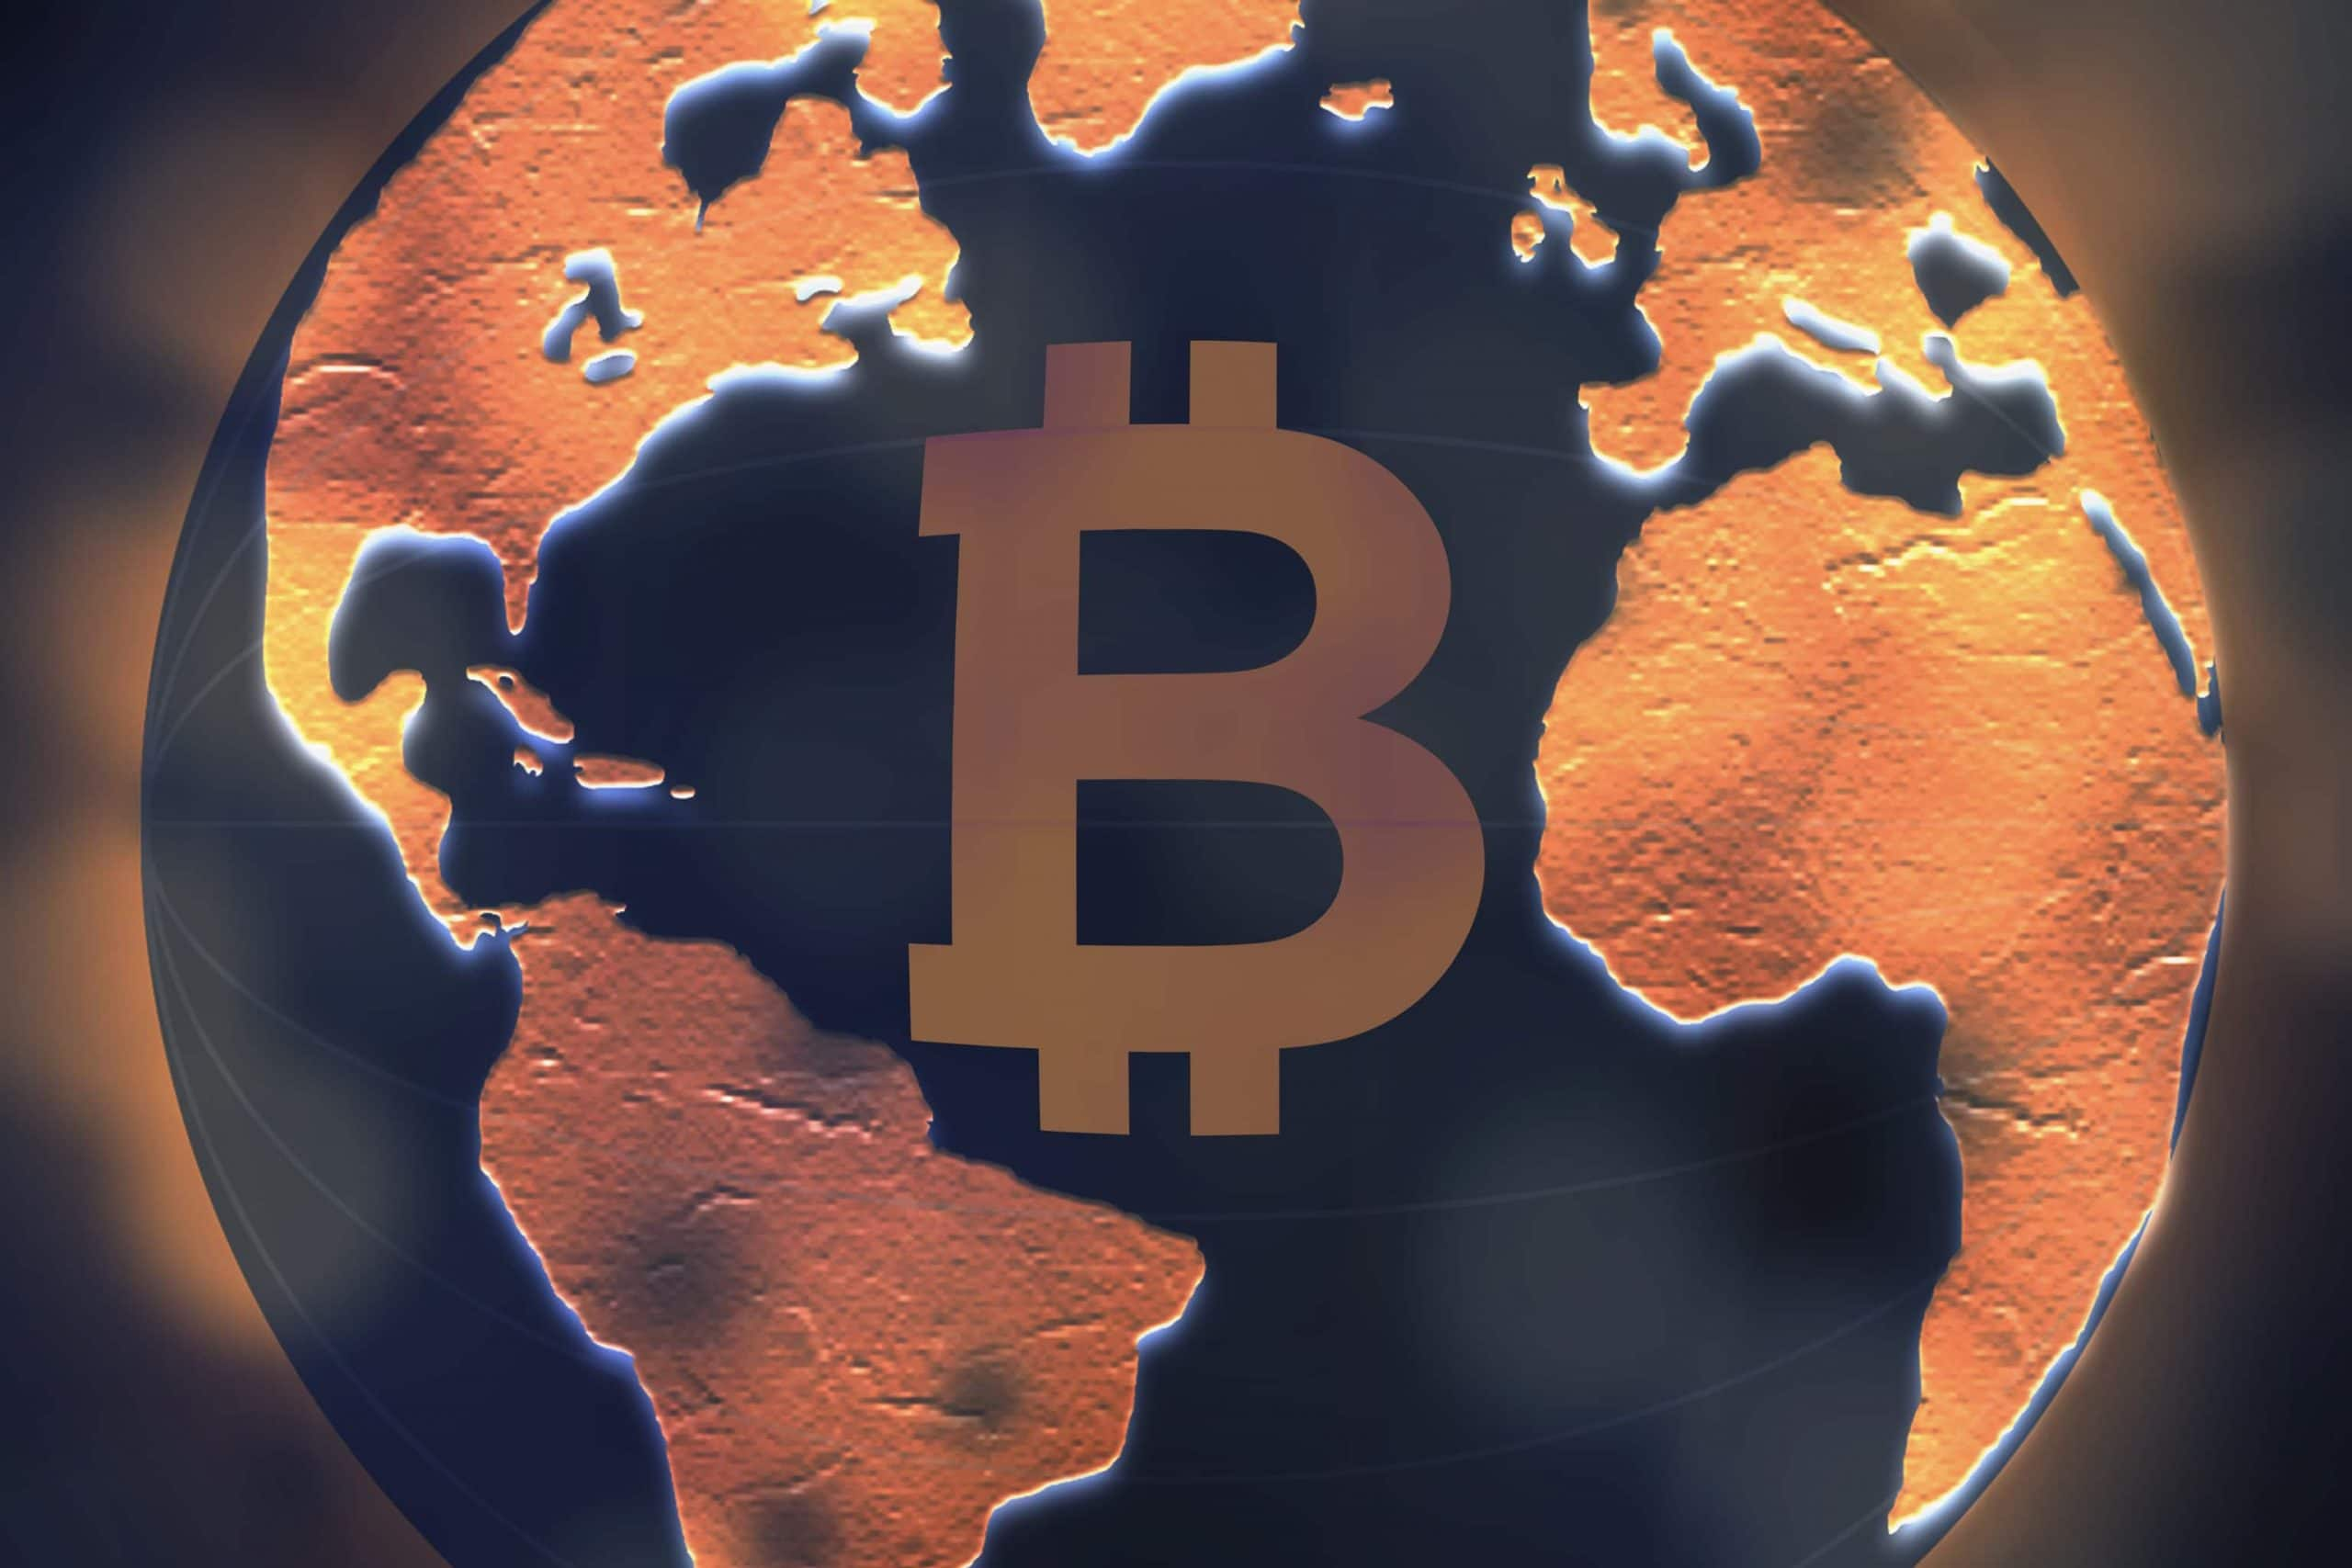 Bitcoin-Logo auf Erdball-Illustration